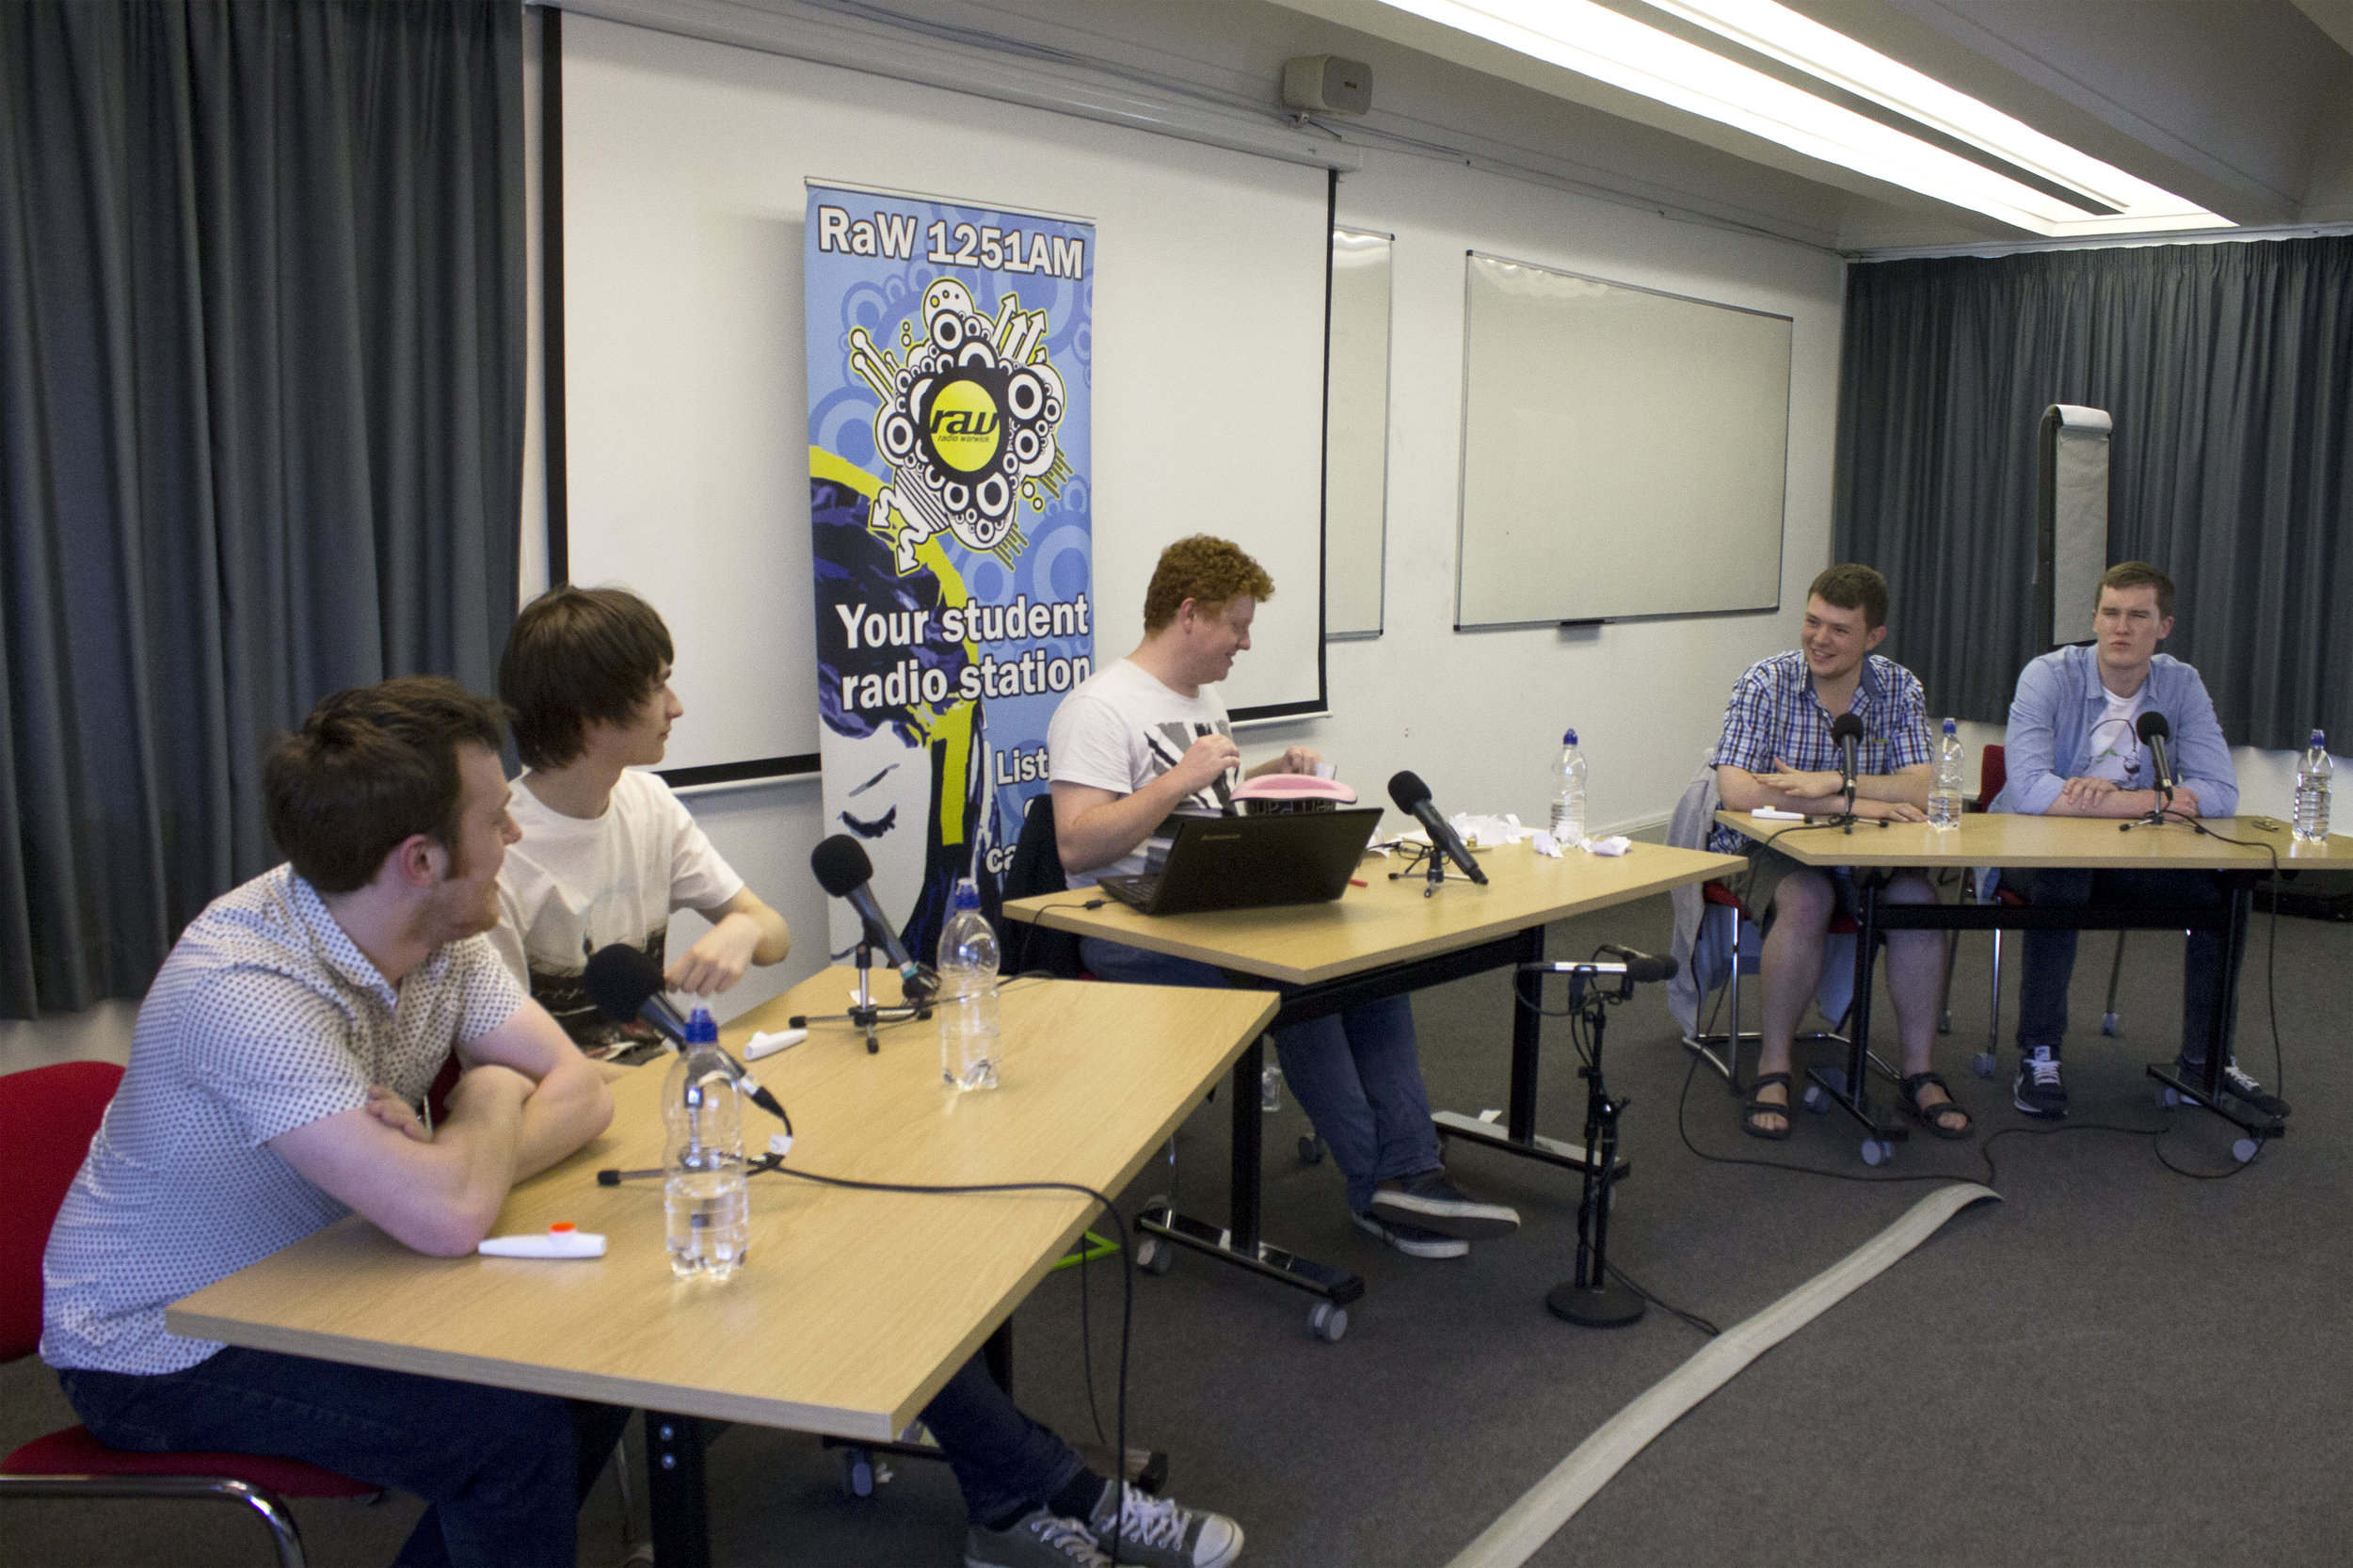 The Quizzical Look set at Warwick University